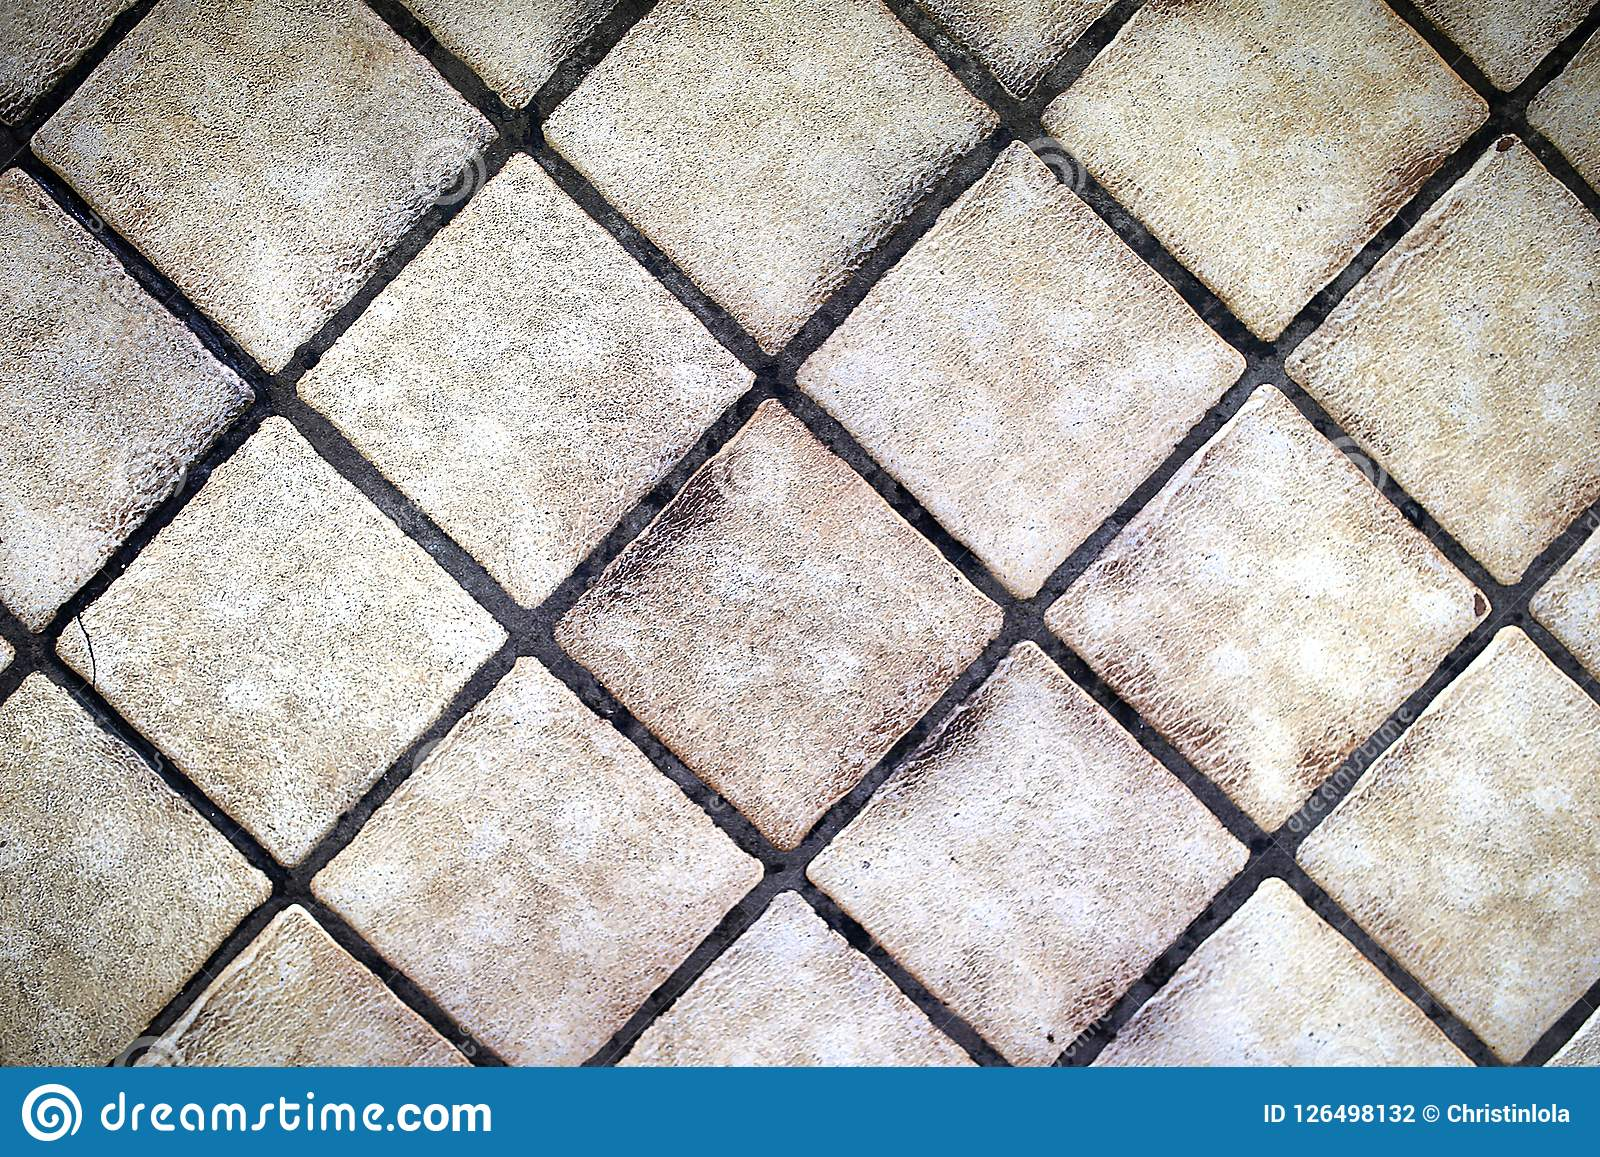 https www dreamstime com background small square tan floor tiles diagonal pattern background small tan square floor tiles diagonal image126498132